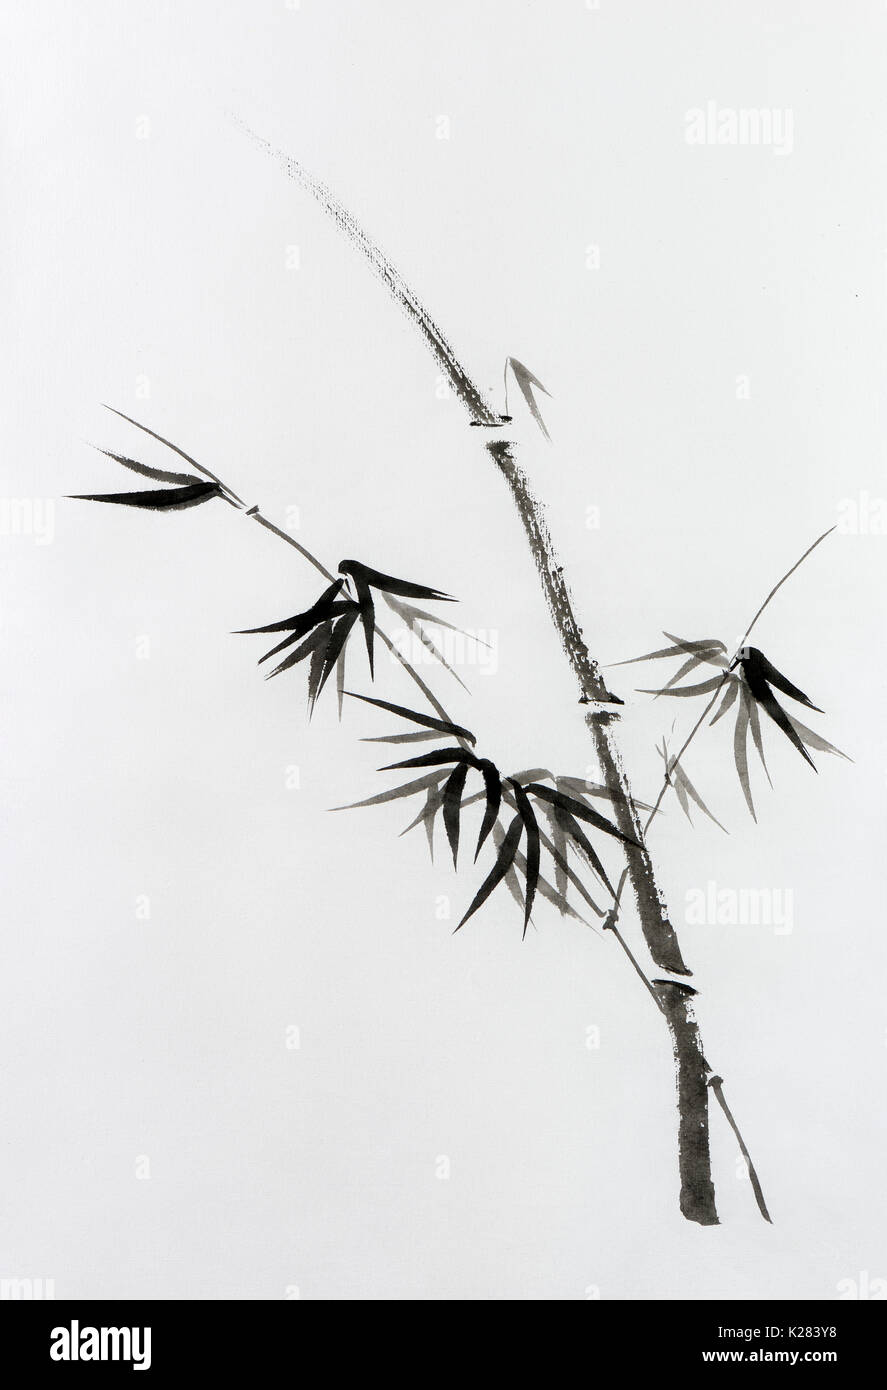 Minimalistic Japanese Sumi-e Zen black ink painting of bamboo stalk with young leaves on rice paper illustration Stock Photo